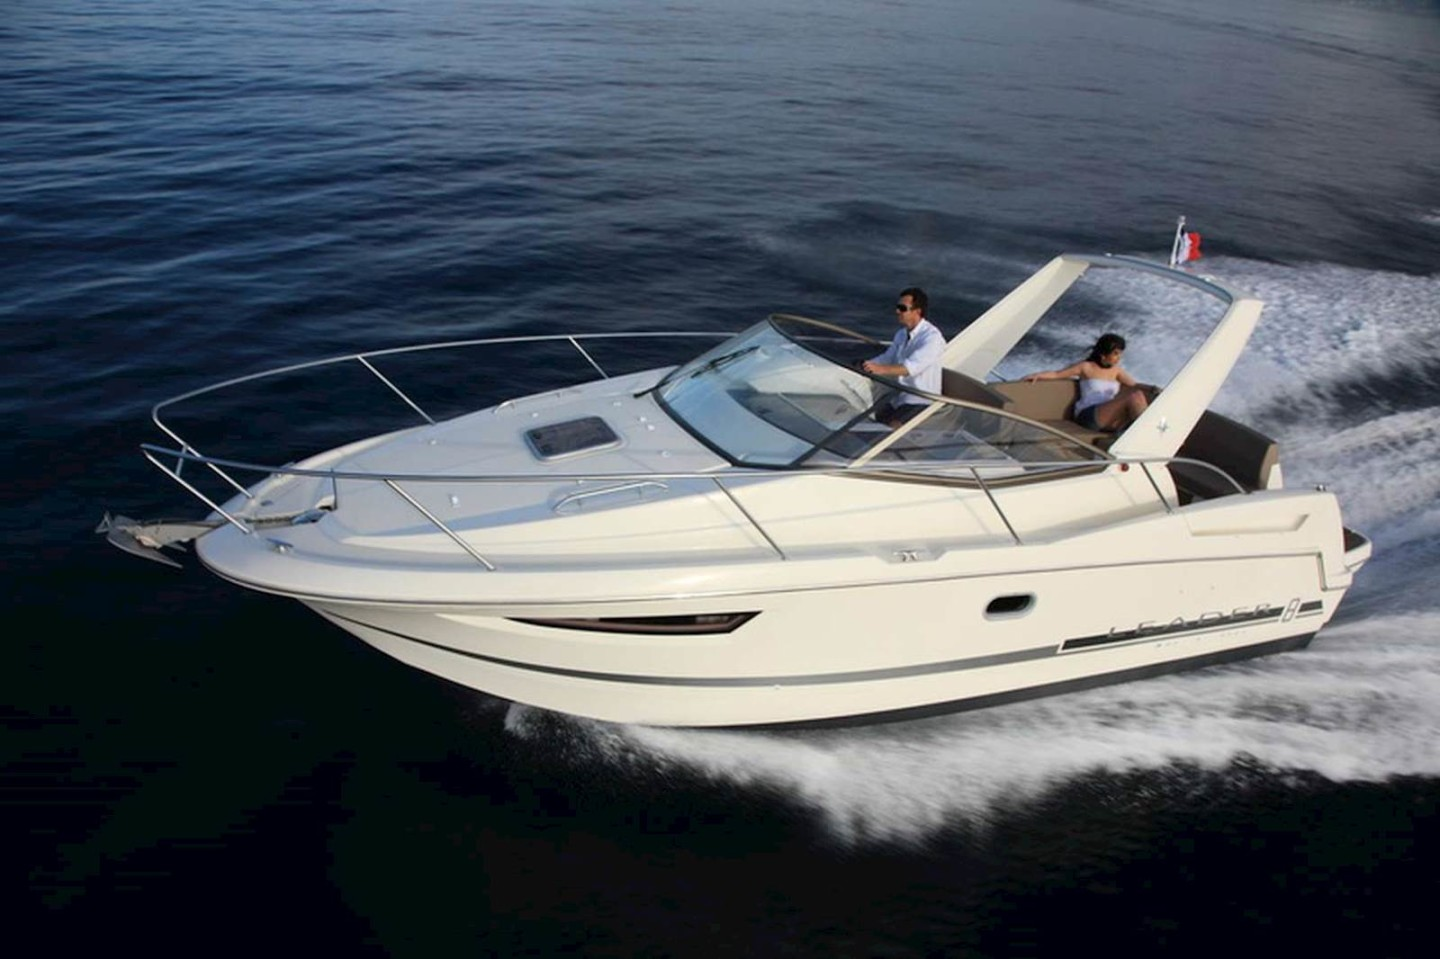 croatia itinerary motor boat hire charter dubrovnik paddle surfing